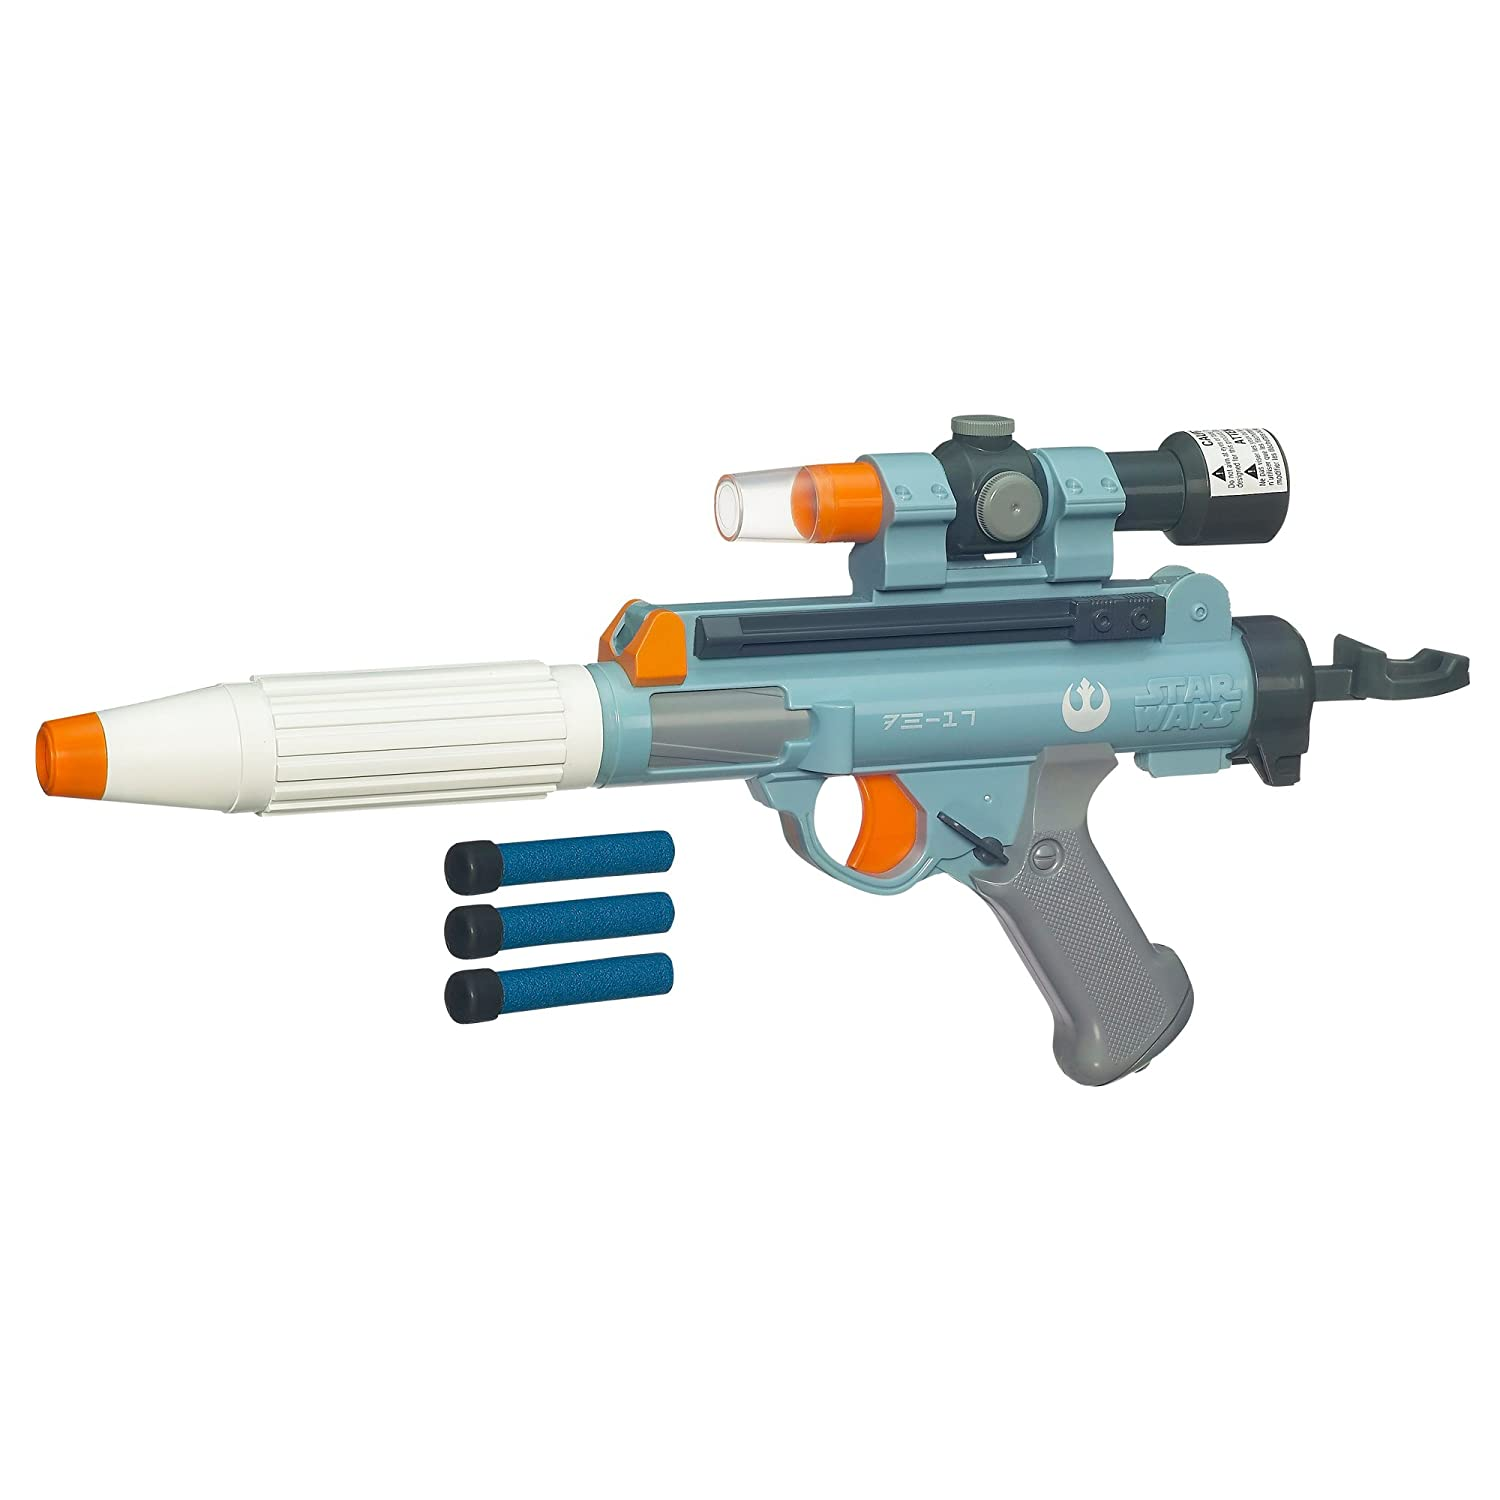 Amazon.com: Star Wars Rebel Trooper Electronic Dart Blaster: Toys & Games